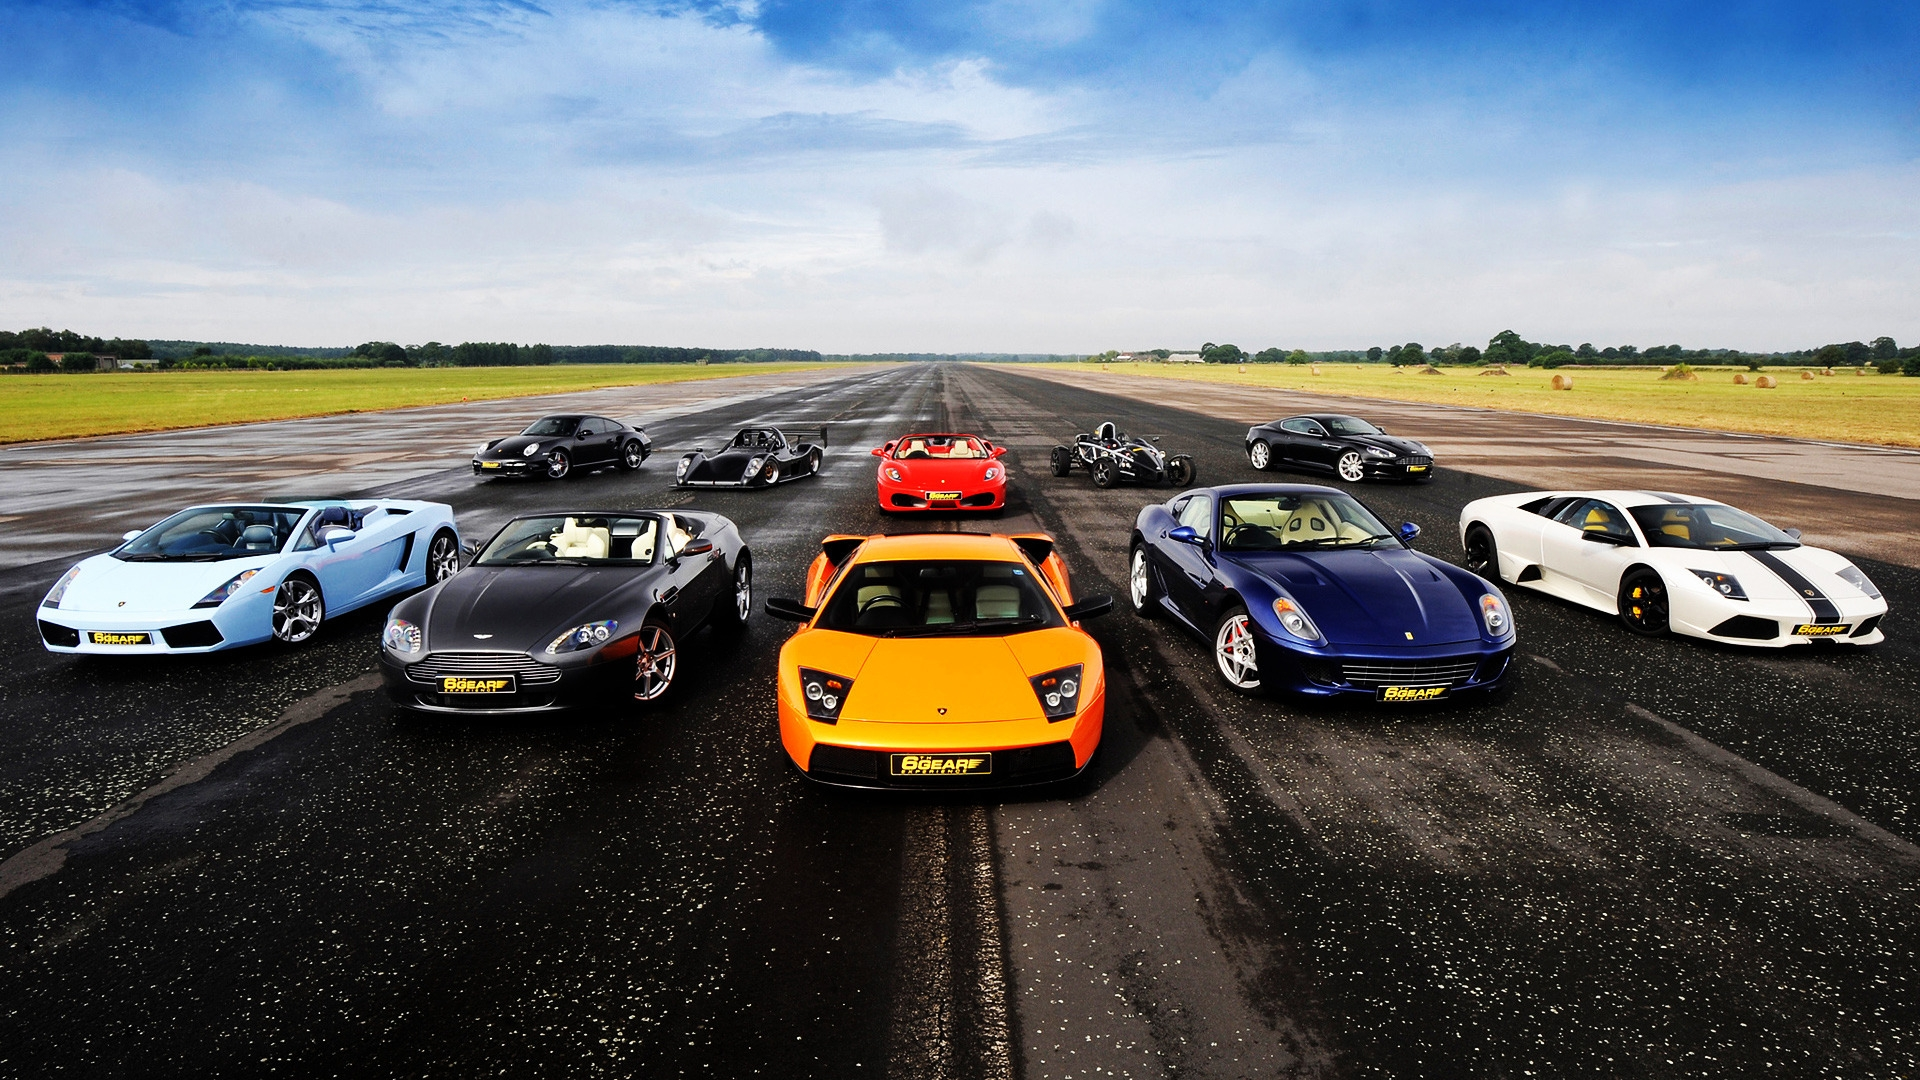 Supercars for 1920 x 1080 HDTV 1080p resolution